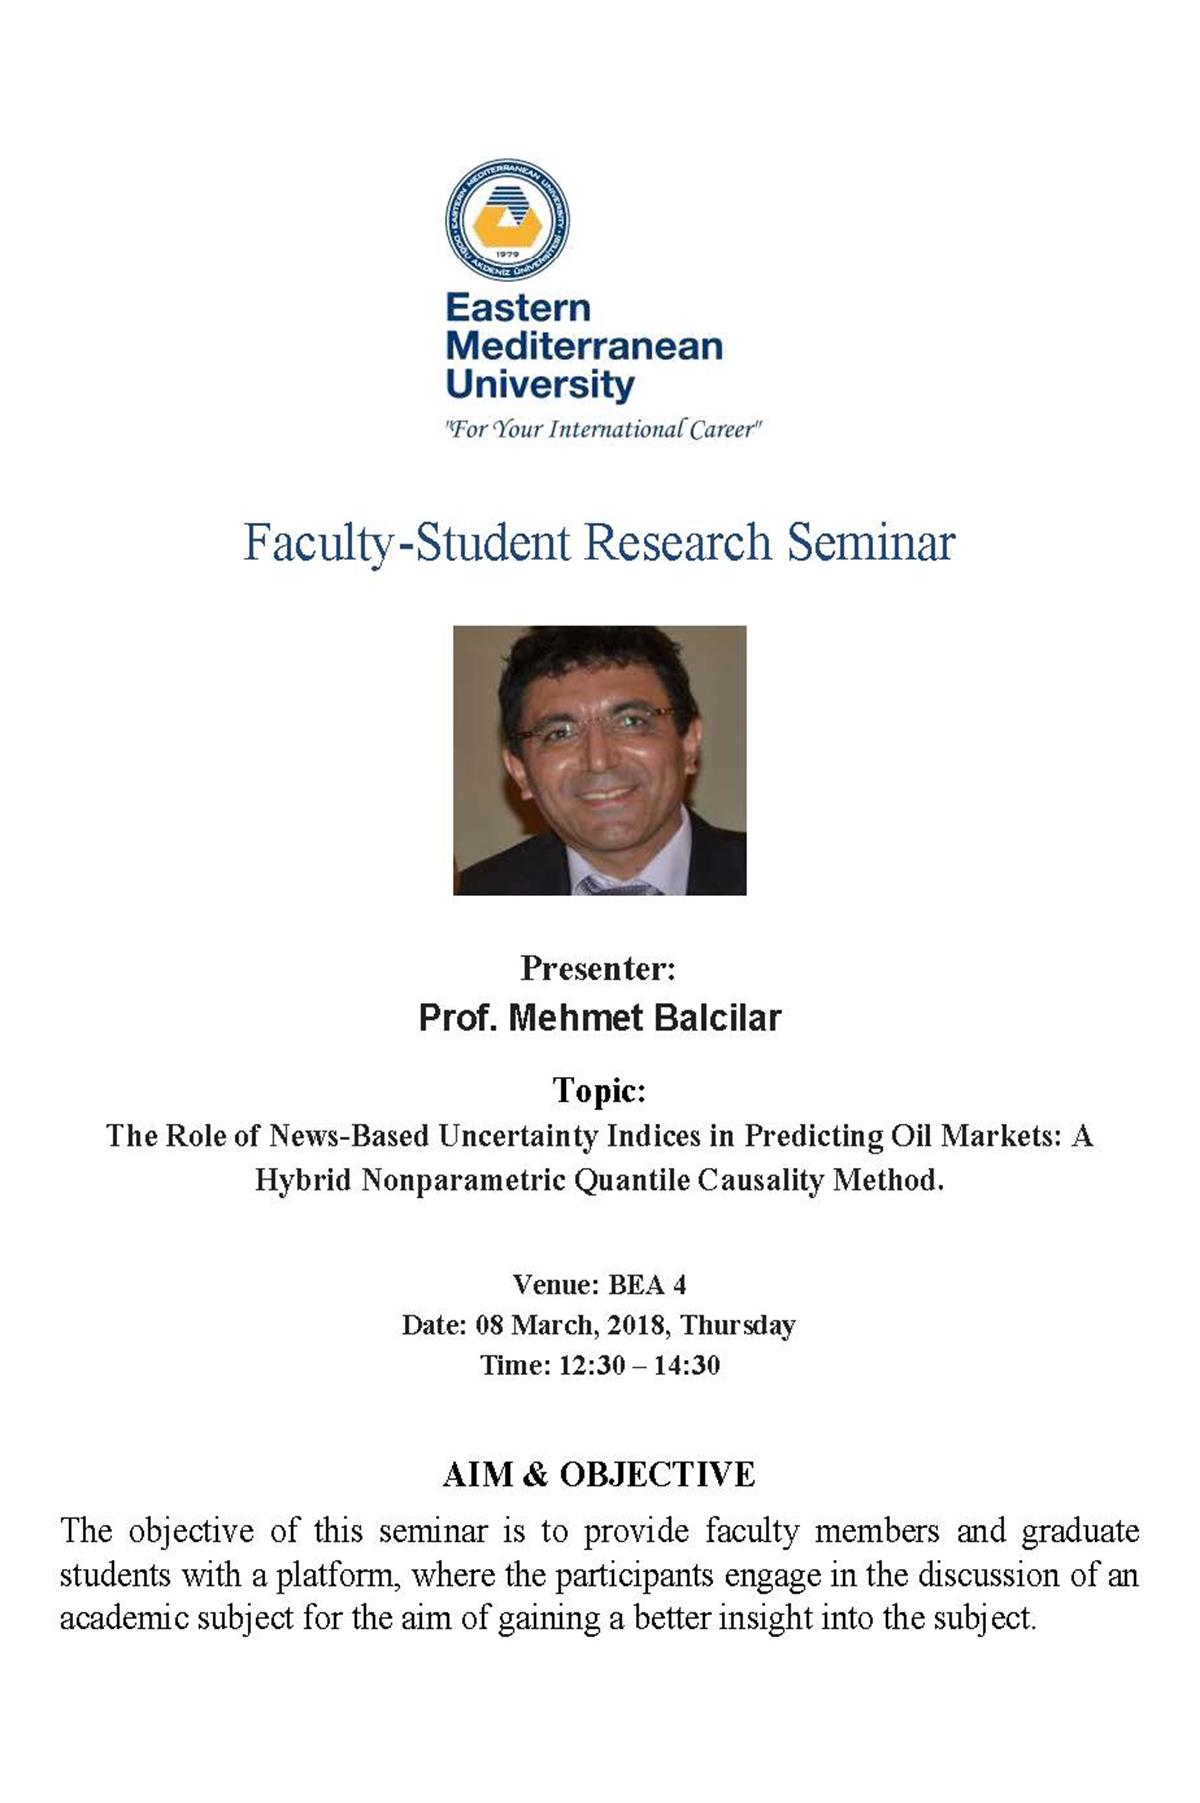 Seminar Series: The Role of News-Based Uncertainty Indices in Predicting Oil Markets: A Hybrid Nonparametric Quantile Causality Method By Prof. Mehmet Balcilar